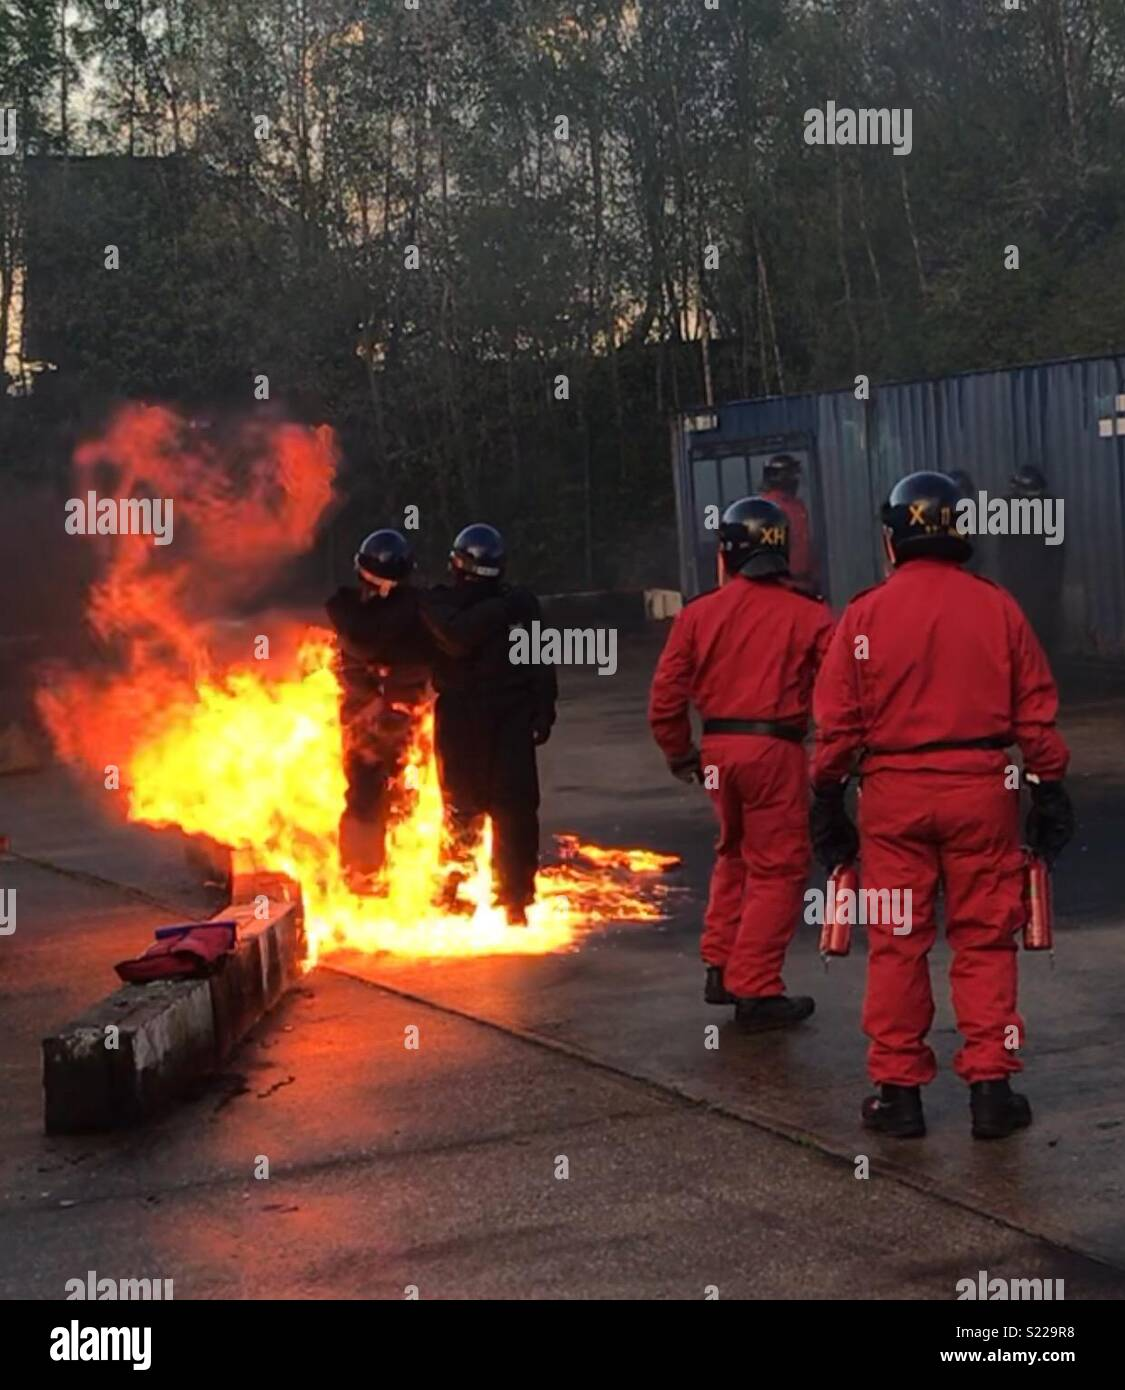 Police Officers petrol bomb training - Stock Image